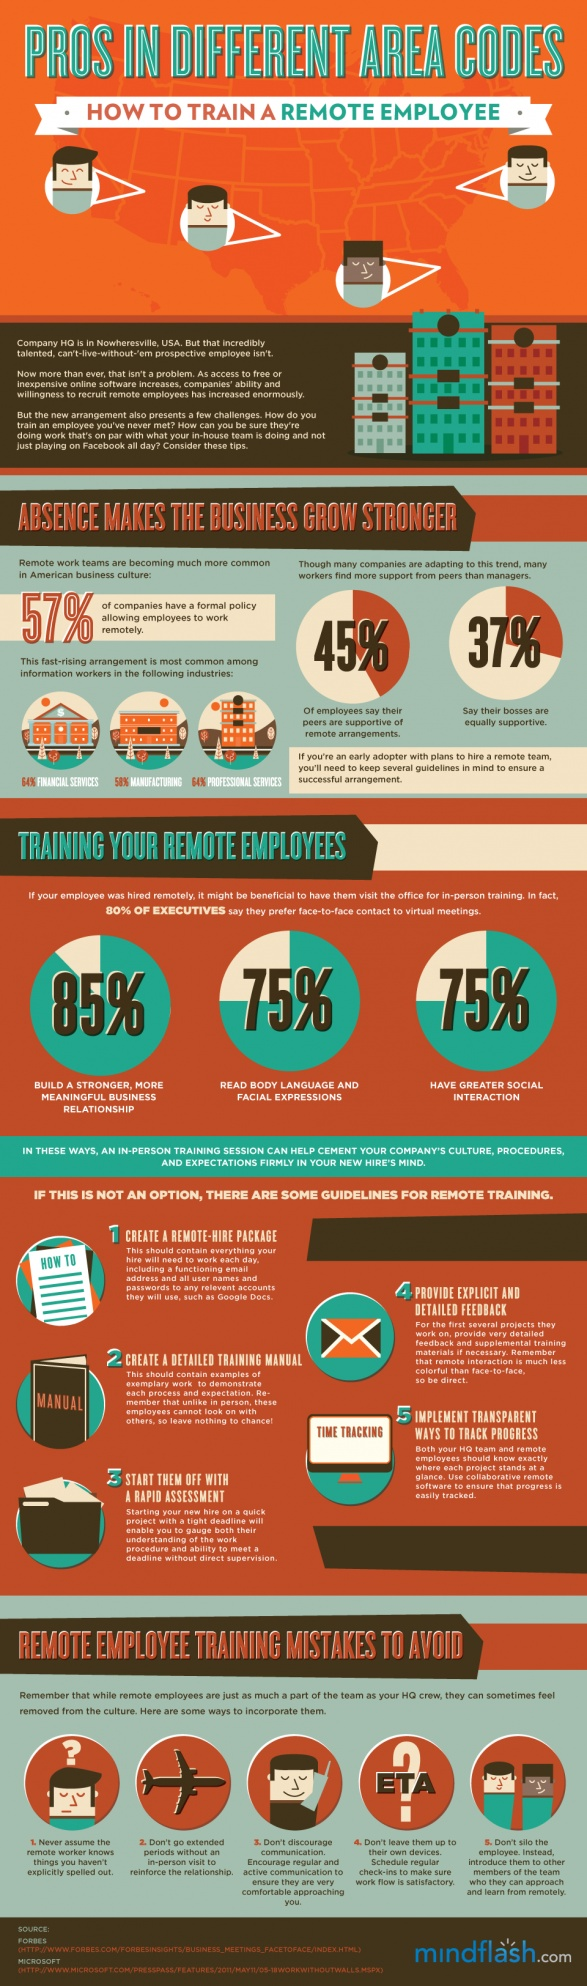 Pros in different area codes: How to train a remote employee | Company HQ is in Nowheresville, USA. But that incredibly talented, can't-live-without-'em prospective employee isn't. Now more than ever, that isn't a problem. As access to free or inexpensive online software increases, companies' ability and willingness to recruit remote employees has increased enormously. But the new arrangement also presents a few challenges.